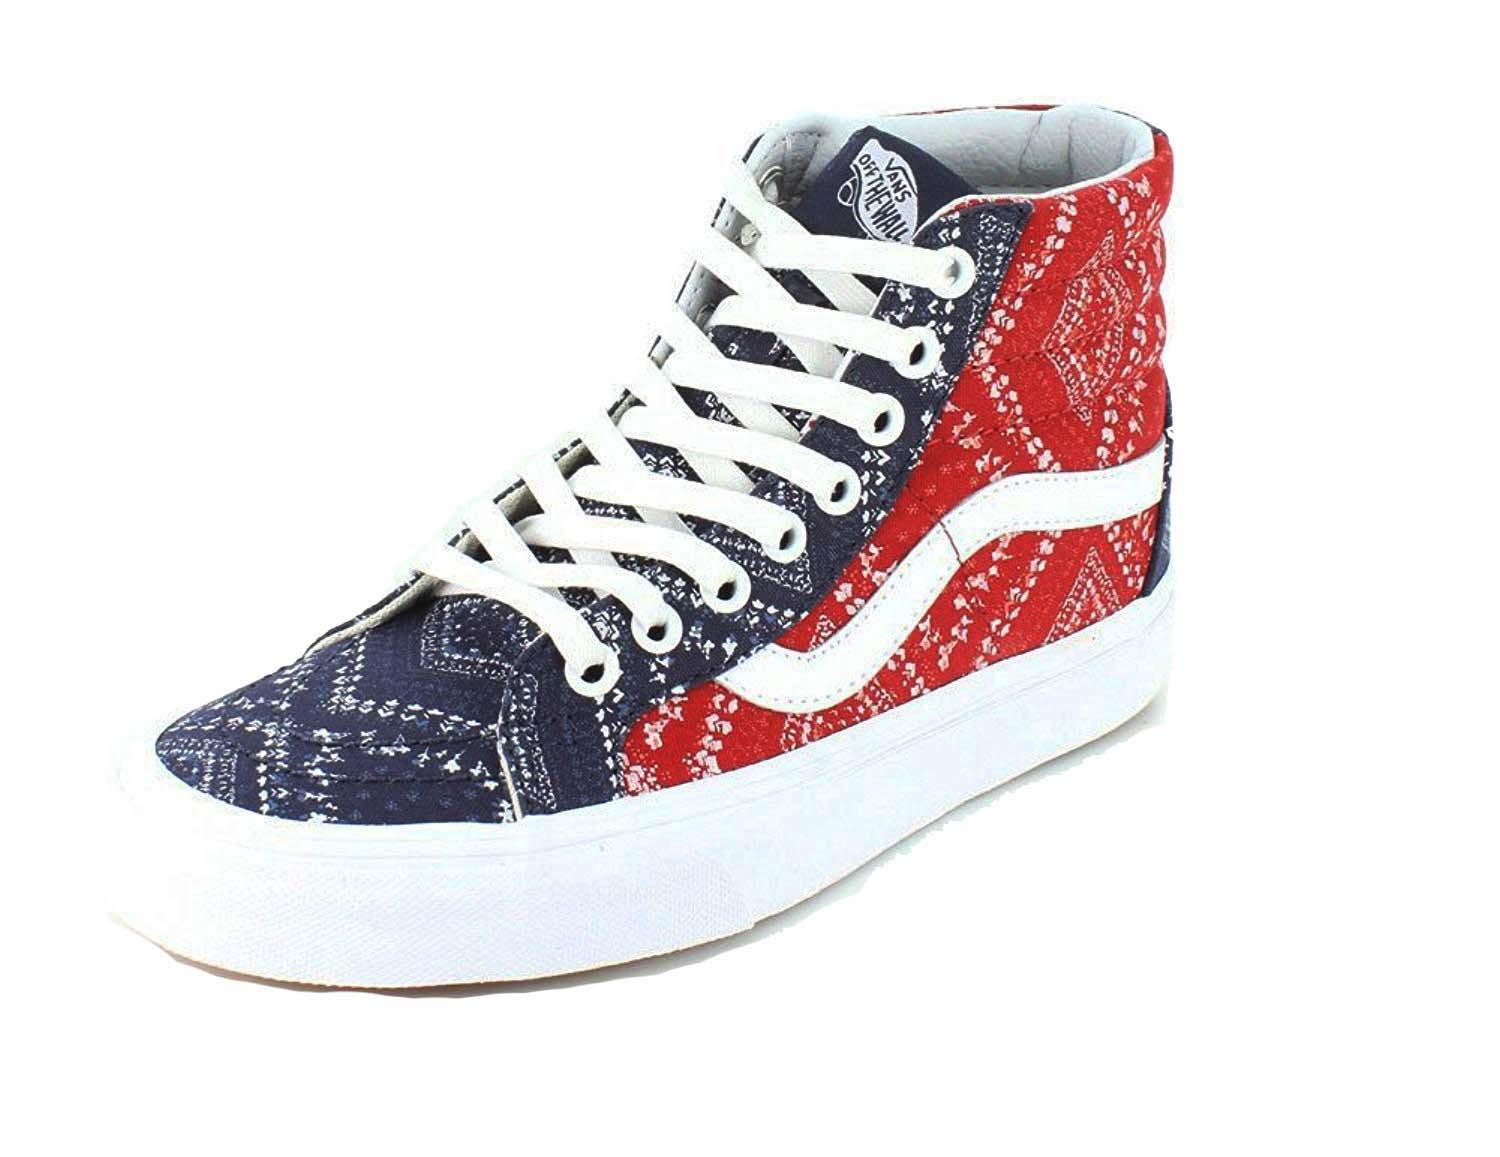 0c15f632f4 ... Lyst - Vans Sk8-hi Slim Low Top Lace Up Fashion Sneakers Mul for whole  Vans  Mens ...